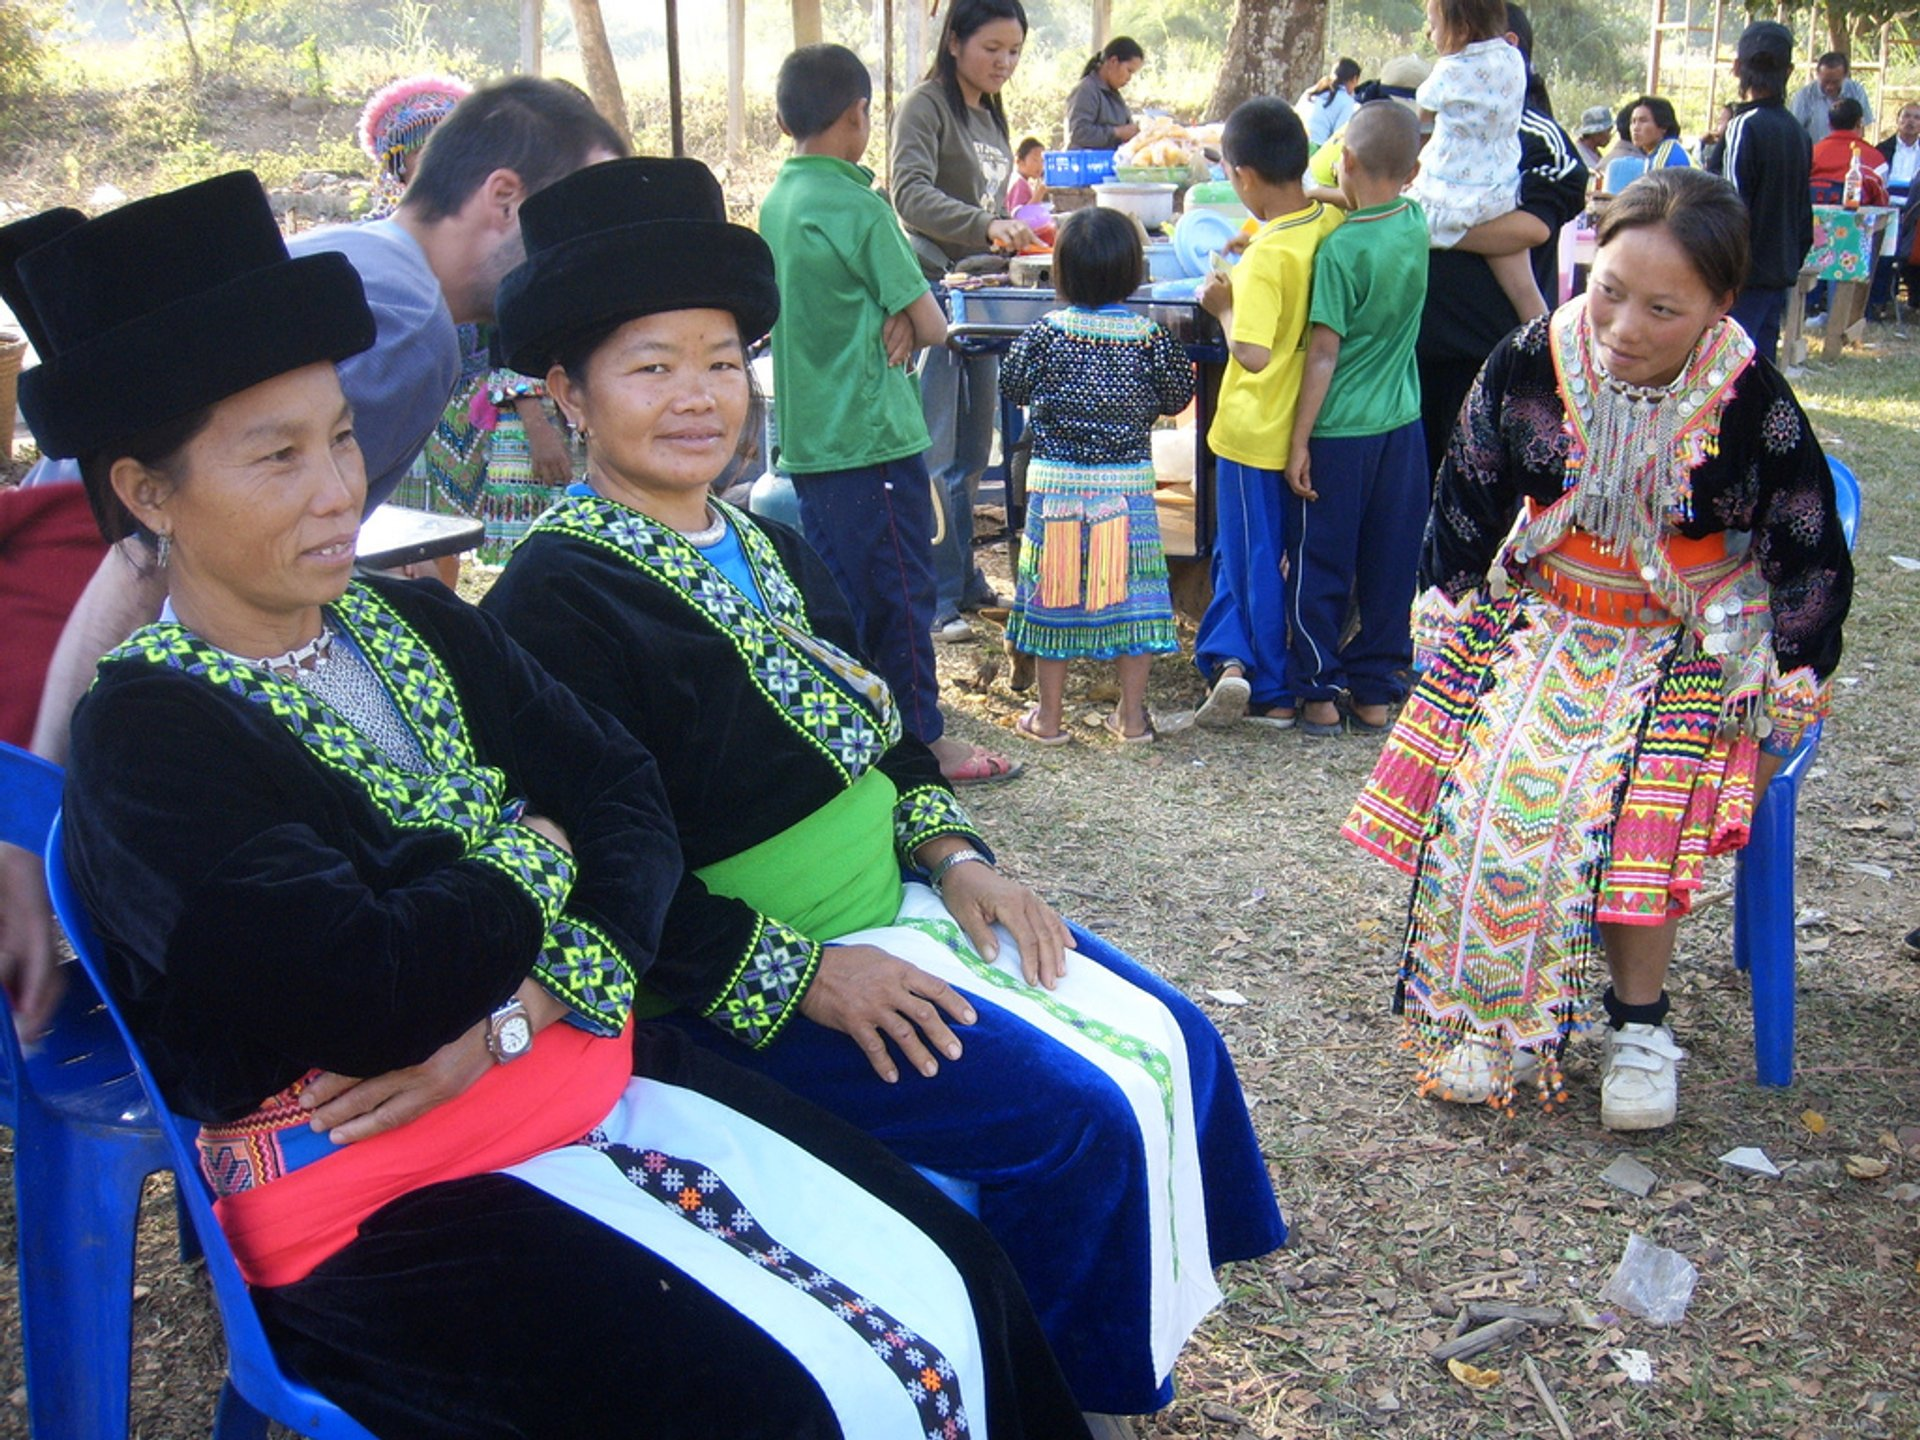 Hmong New Year in Laos - Best Season 2020